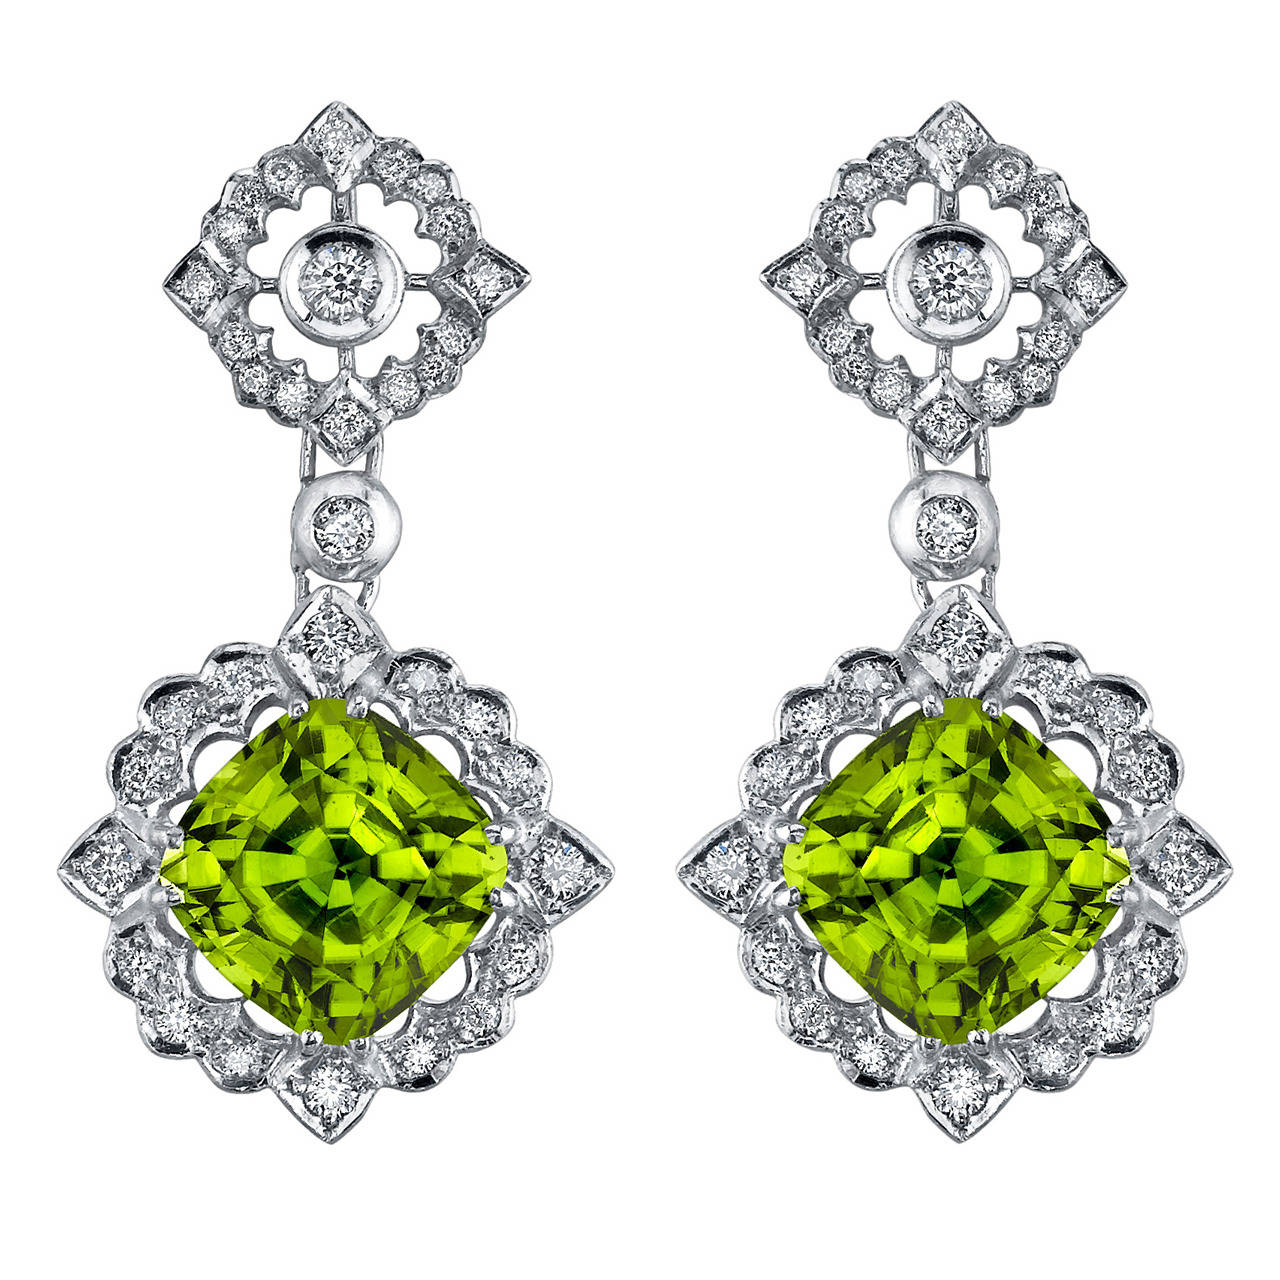 12.89 Carat Fine Peridot Diamond Gold Earrings For Sale